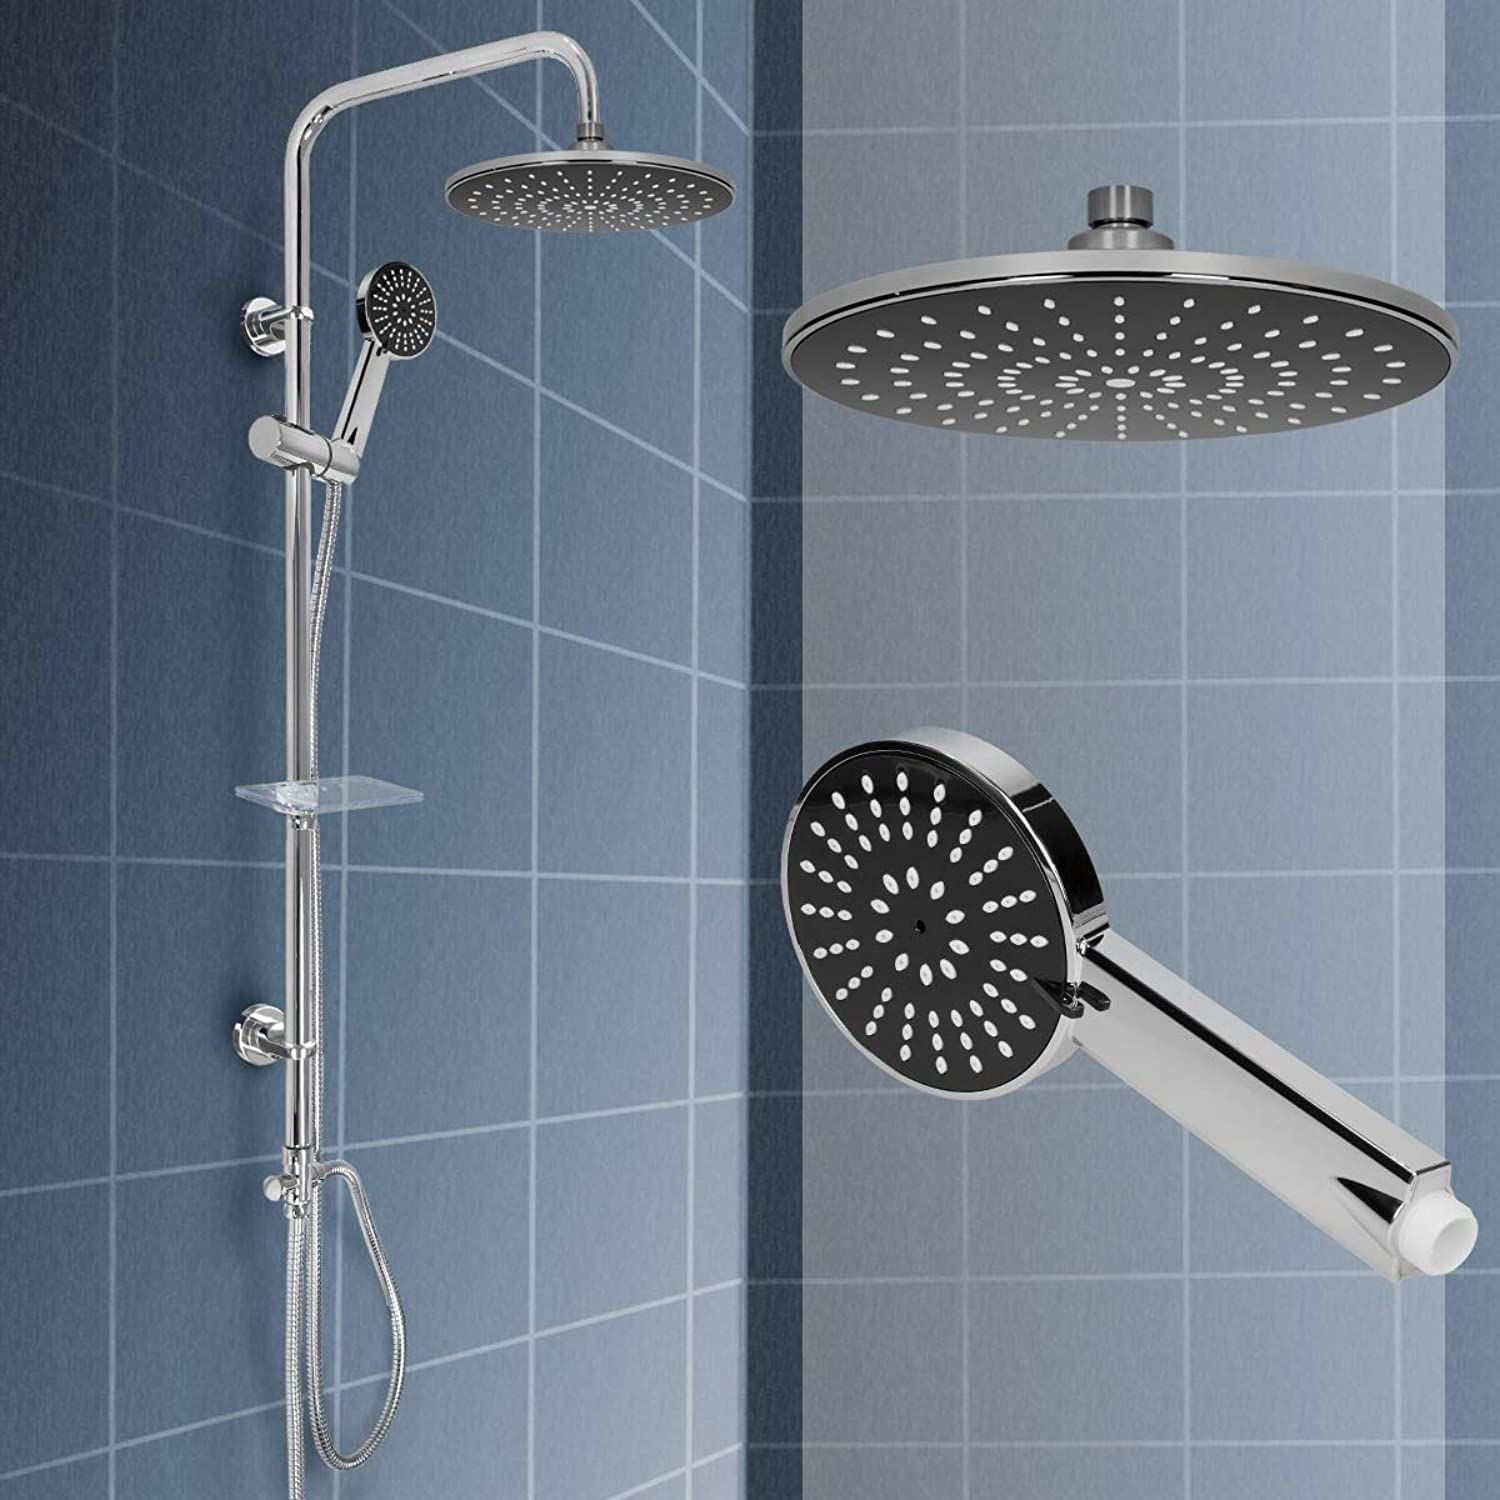 ECD Germany Stainless Steel Shower Faucet - Round - with Anti-Chalk Nozzles - ? 220 mm Rain Shower Head - Stainless Steel Hand Shower - Incl. Shower Hose and Mounting Material Rainshower Shower Set Shower System